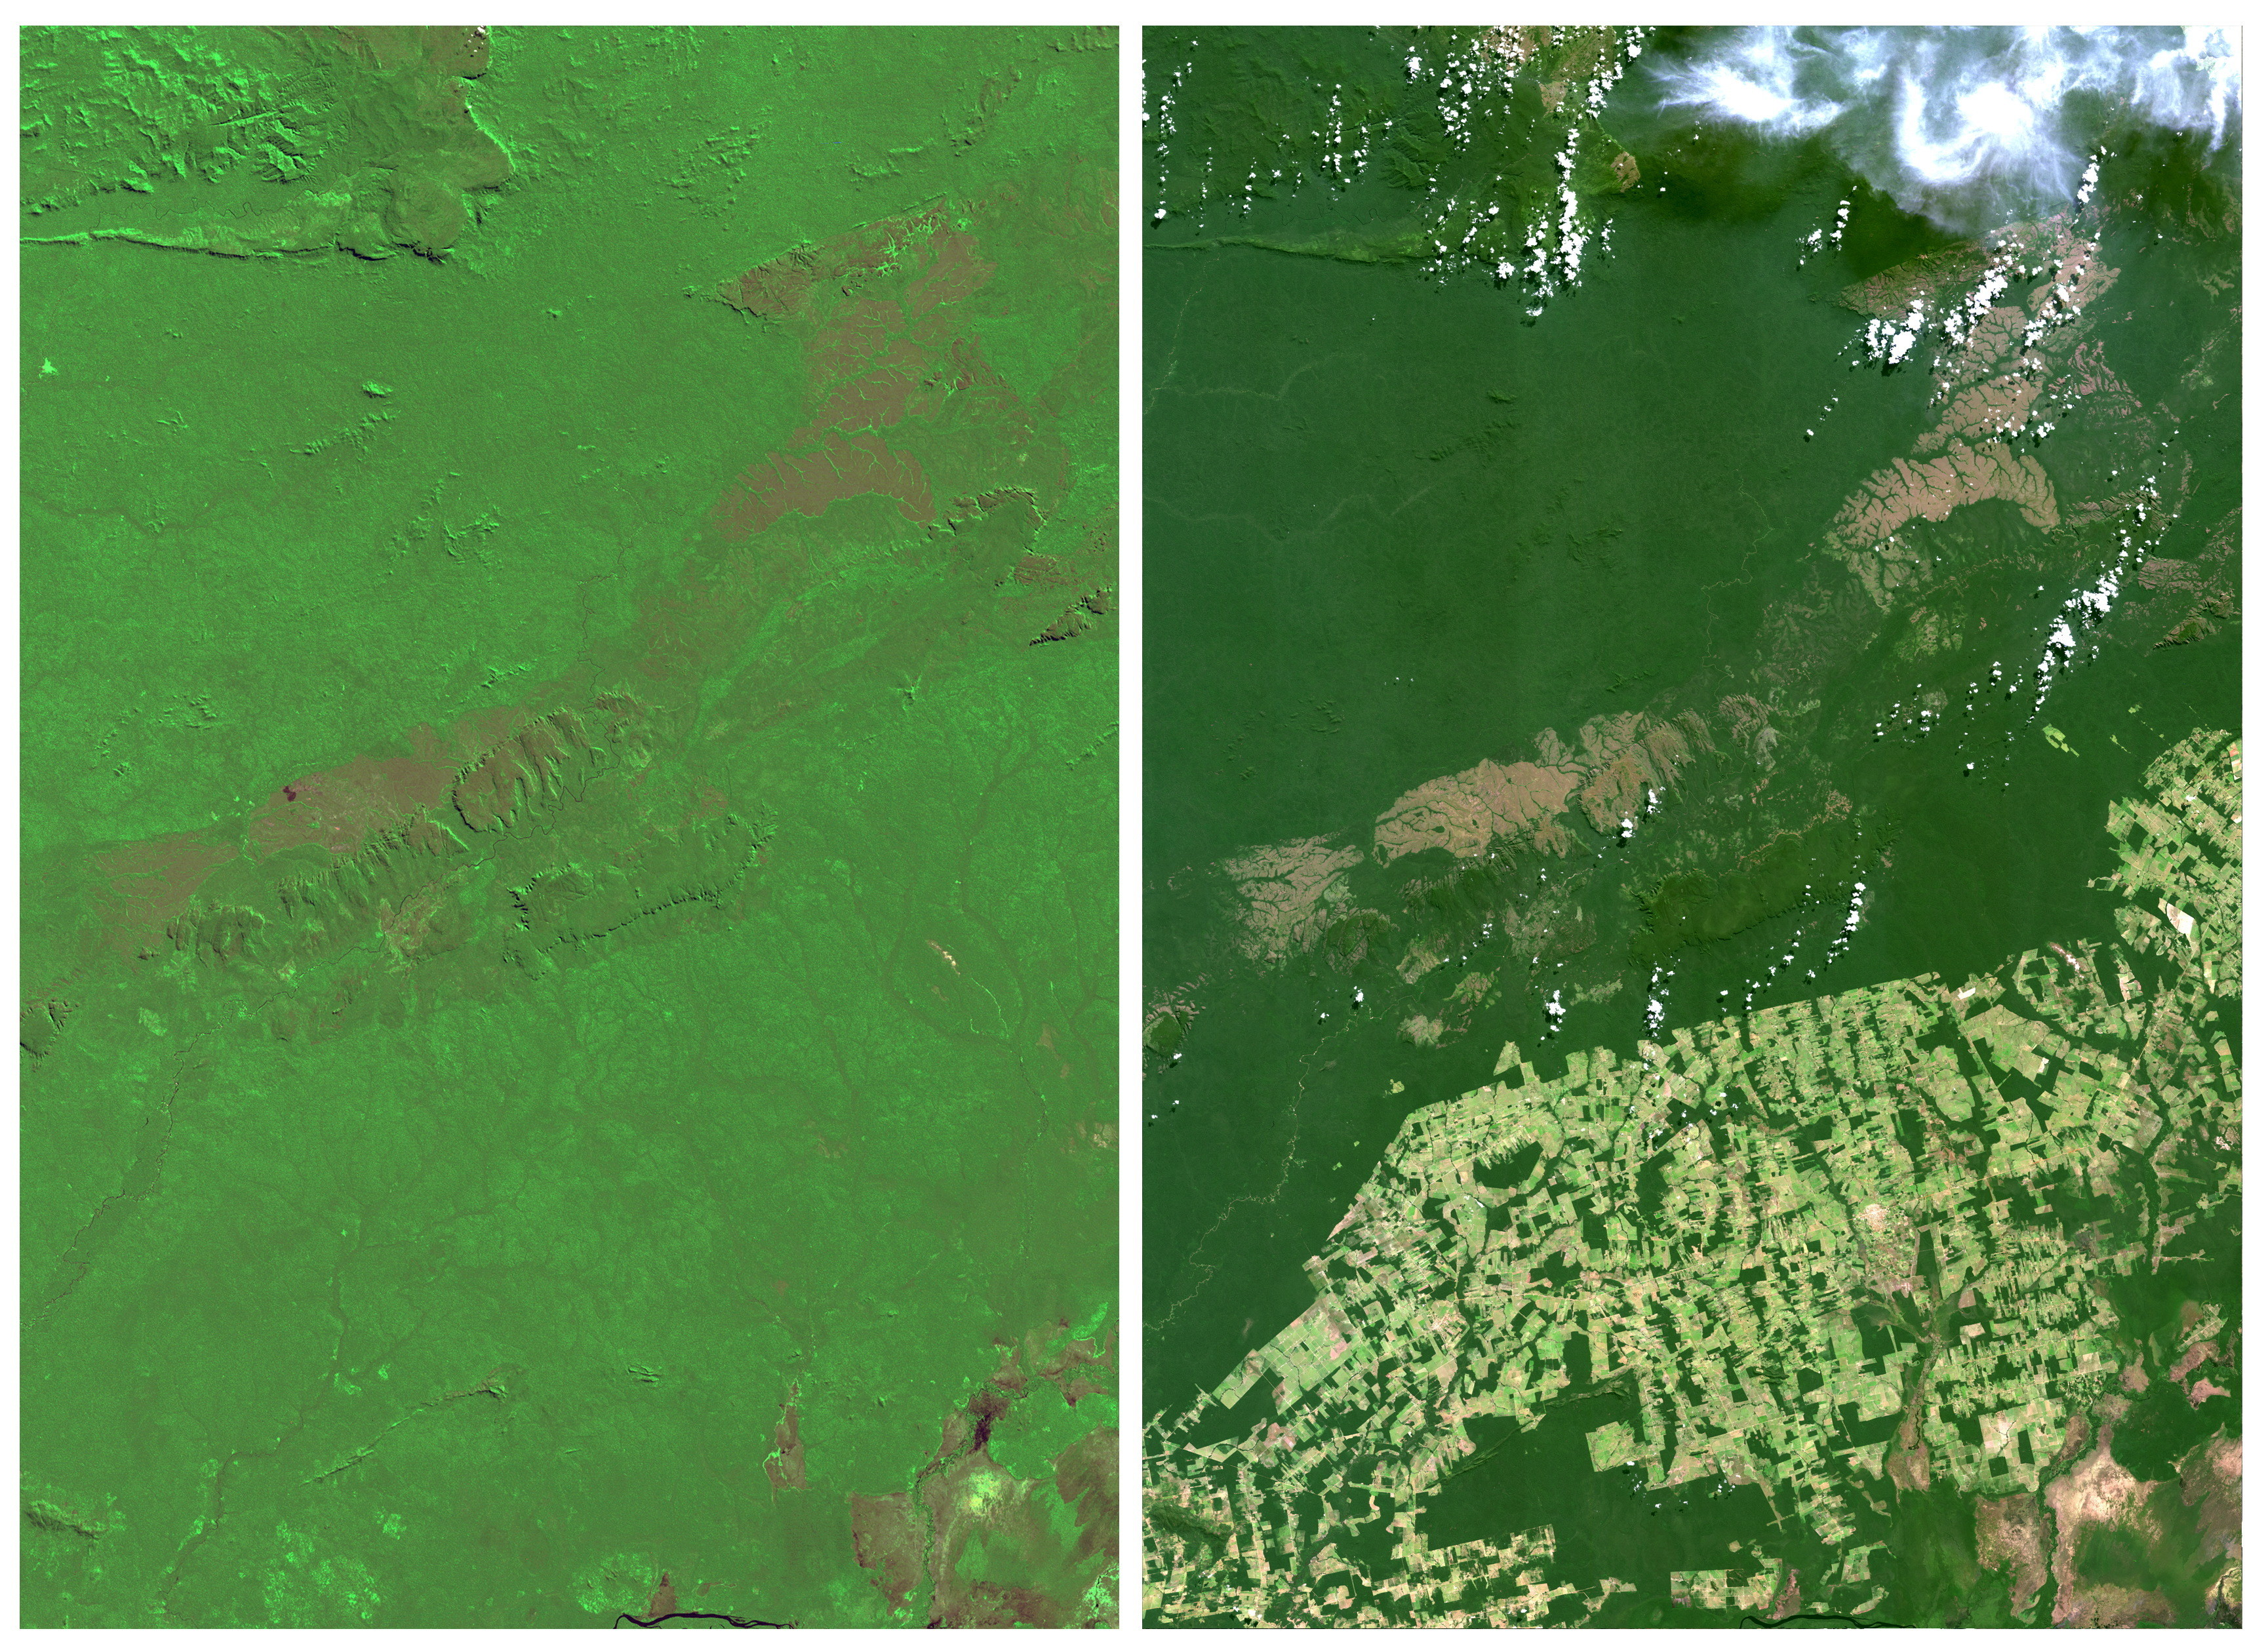 Rondonia, a western Brazilian state about half the size of Ireland, is seen in a combination of NASA satellite image taken July, 19, 1975 (L) and August, 27, 2014 (R). Deforestation of the rainforest in Rondonia in recent decades has gone ahead largely unimpeded. Since 1988, about 16 percent of the state has been cleared. An area bigger than Germany has been razed across the entire Amazon over the same period.  REUTERS/NASA/Handout via Reuters   TPX IMAGES OF THE DAY  ATTENTION EDITORS - THIS IMAGE HAS BEEN SUPPLIED BY A THIRD PARTY. THIS PICTURE WAS PROCESSED BY REUTERS TO ENHANCE QUALITY. UNPROCESSED VERSIONS WILL BE PROVIDED SEPARATELY. FOR EDITORIAL USE ONLY. NOT FOR SALE FOR MARKETING OR ADVERTISING CAMPAIGNS